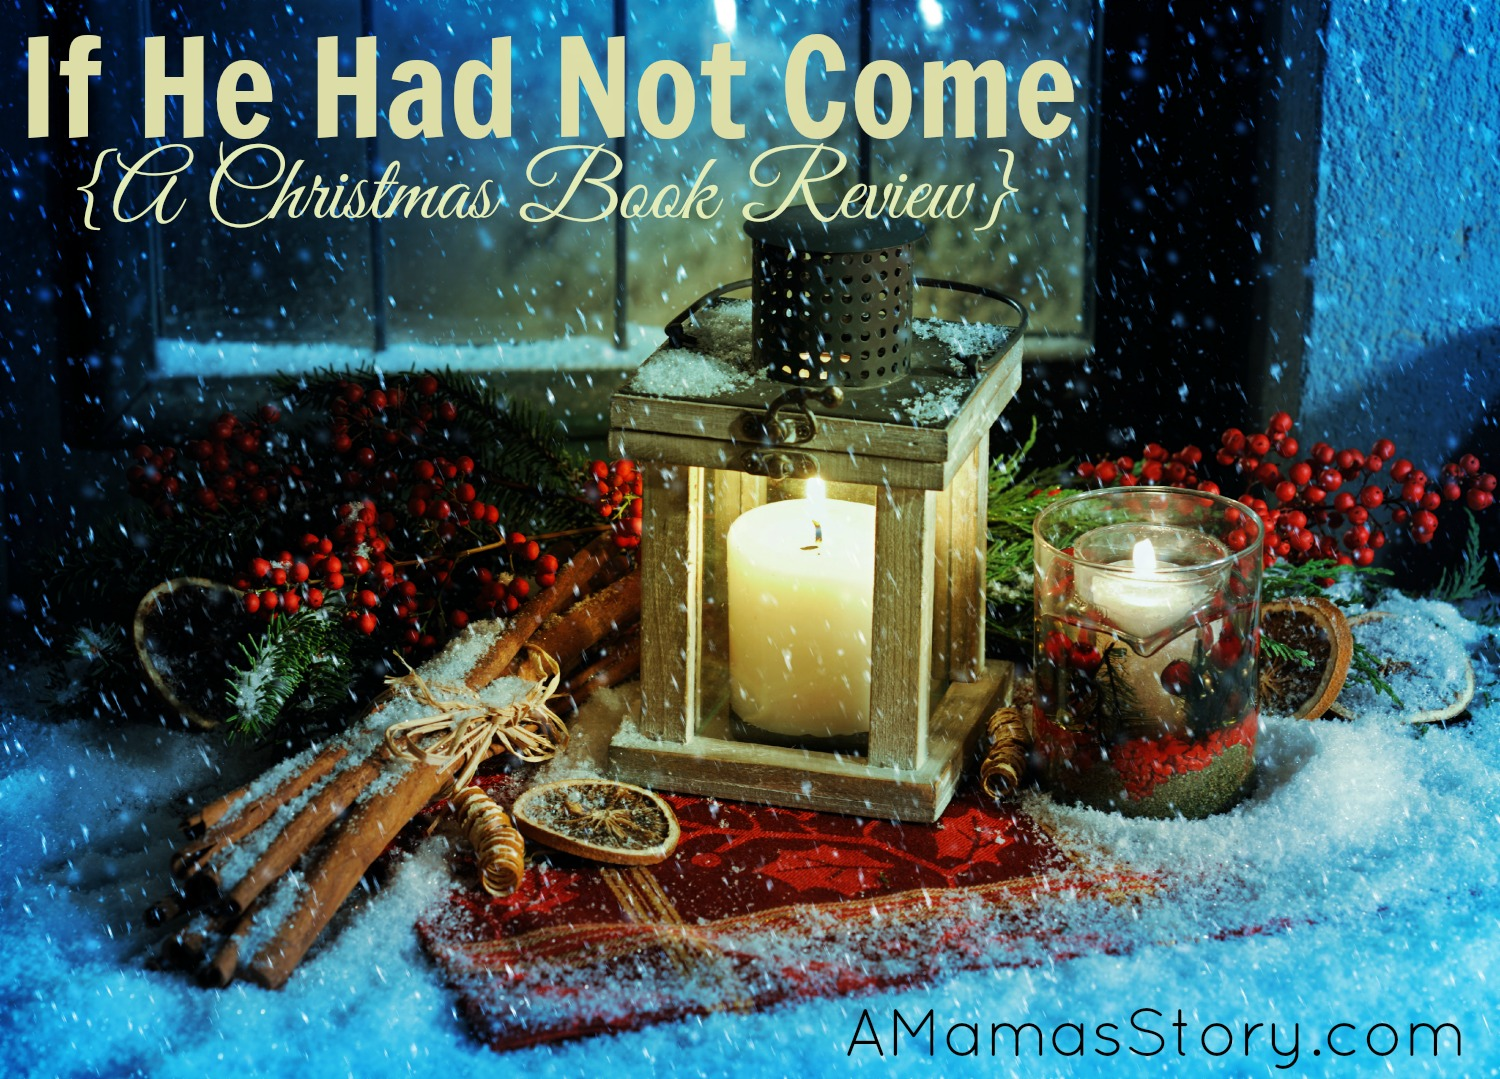 If He Had Not Come {A Christmas Book Review}